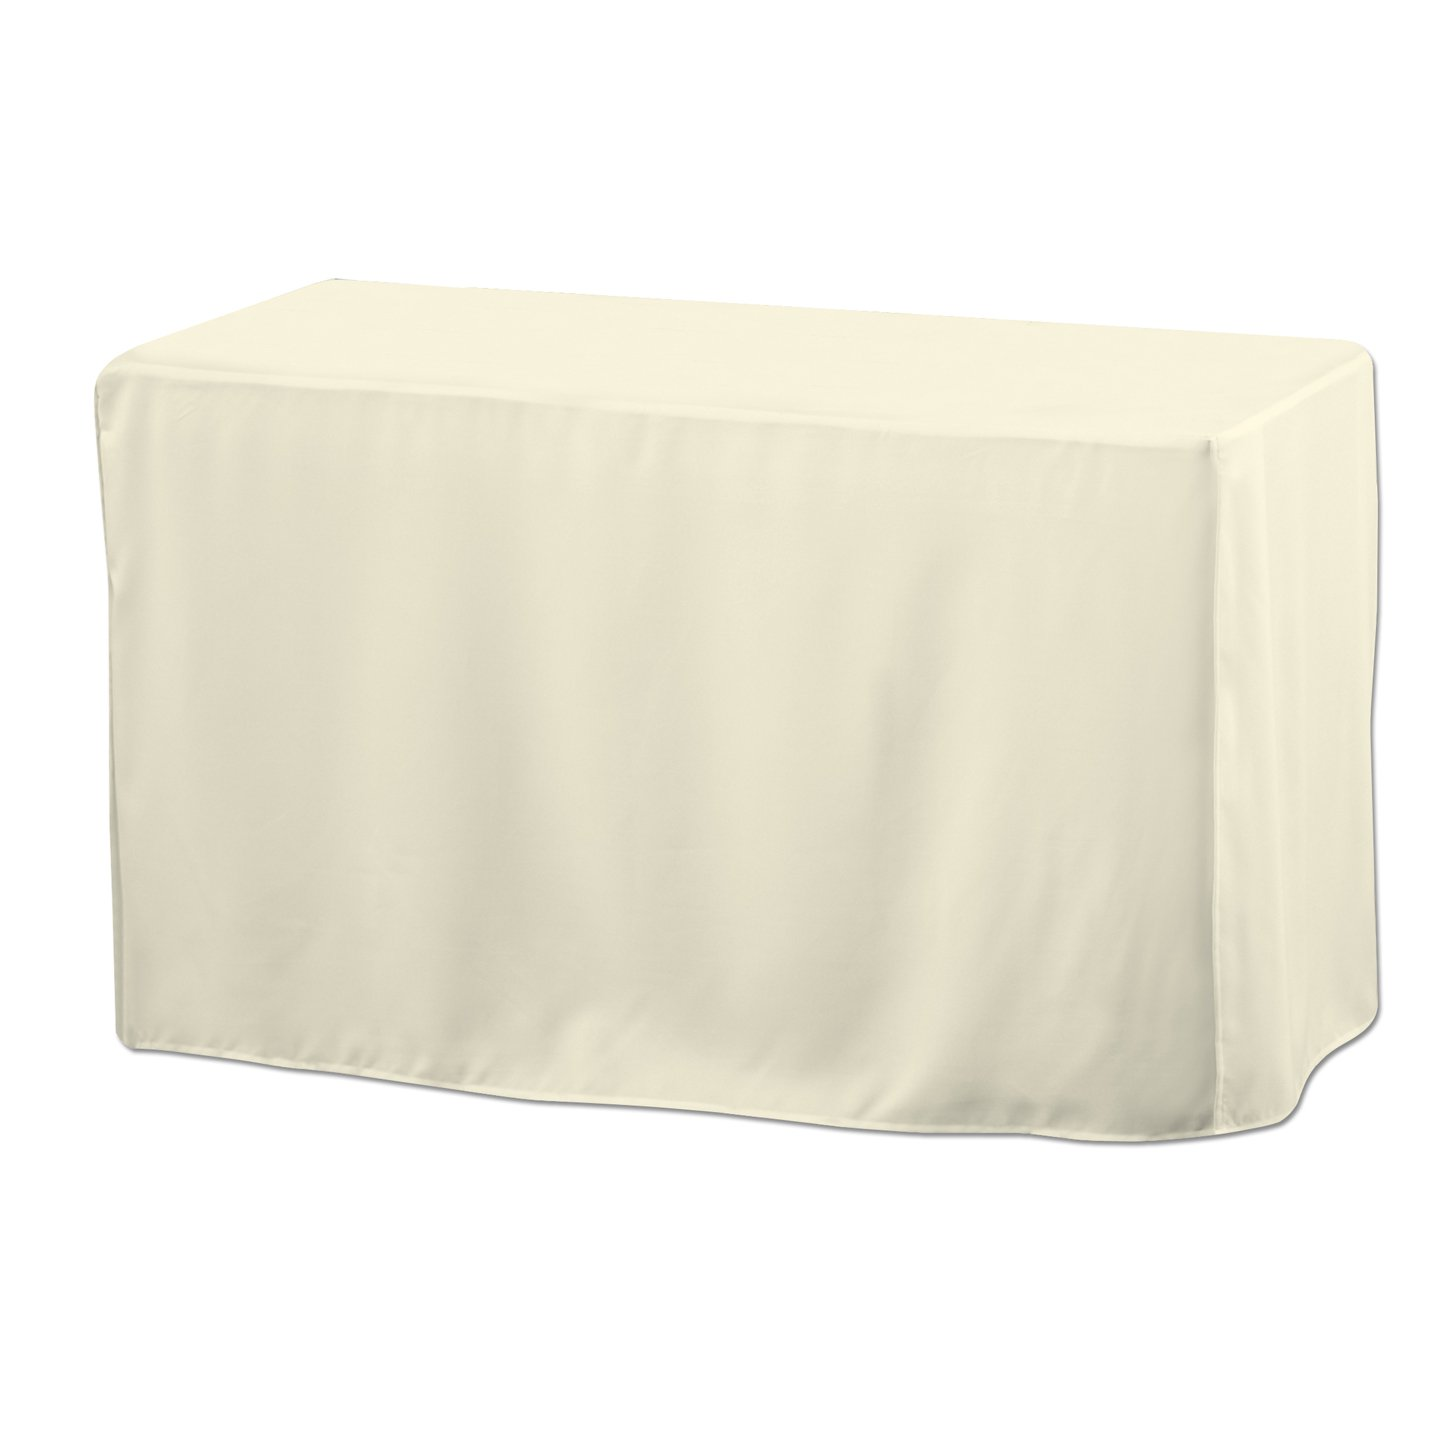 Image of: Patio table cover rectangle